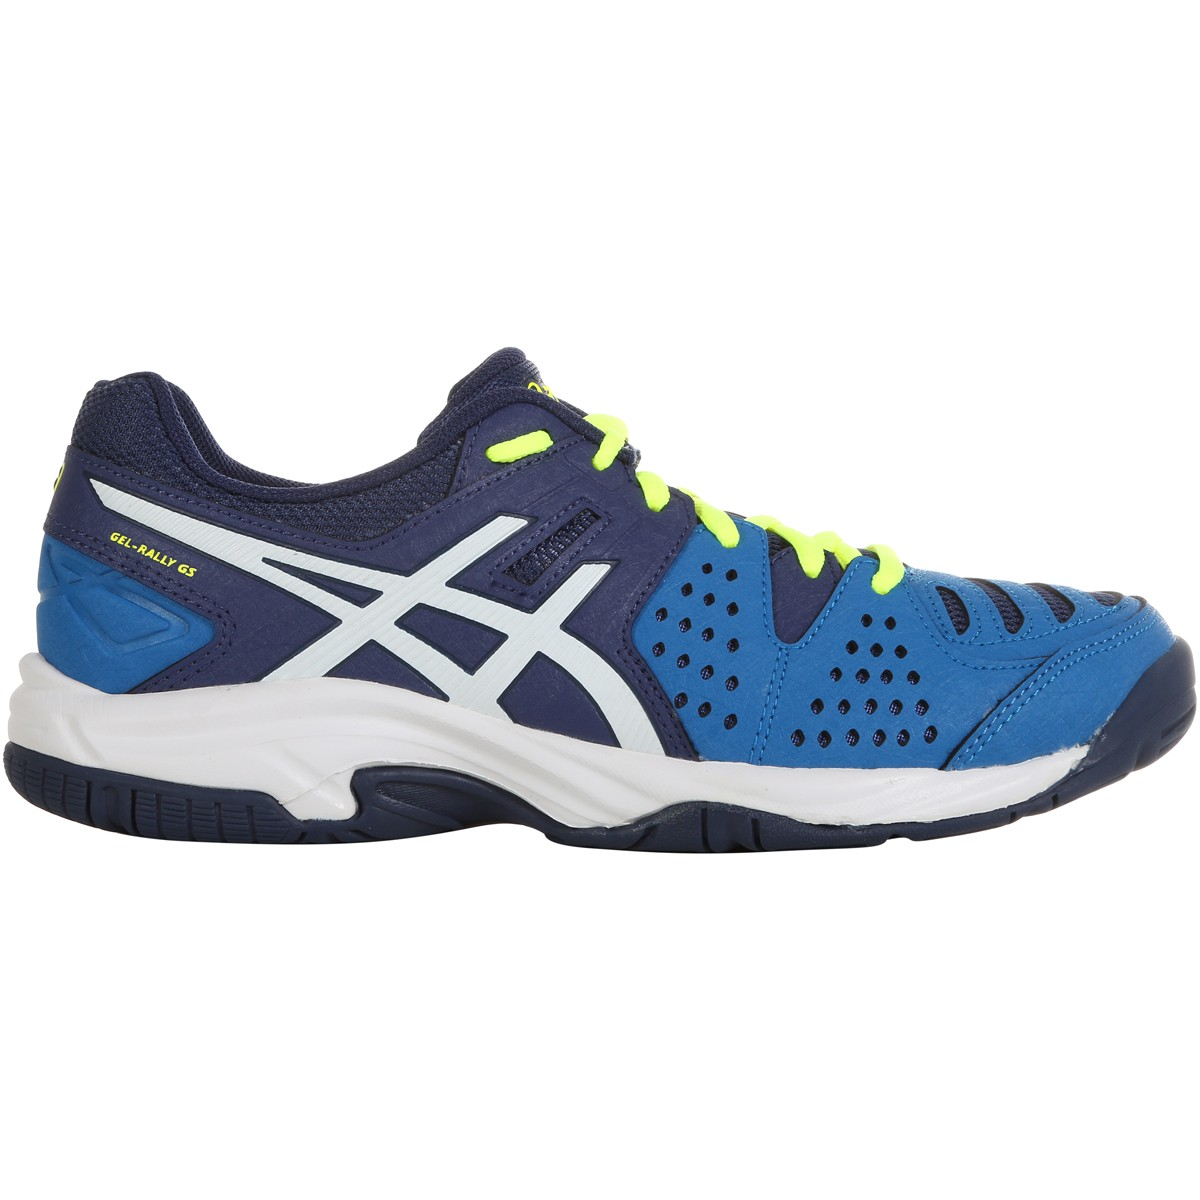 Chaussures Asics Junior Gel Rally Toutes Surfaces